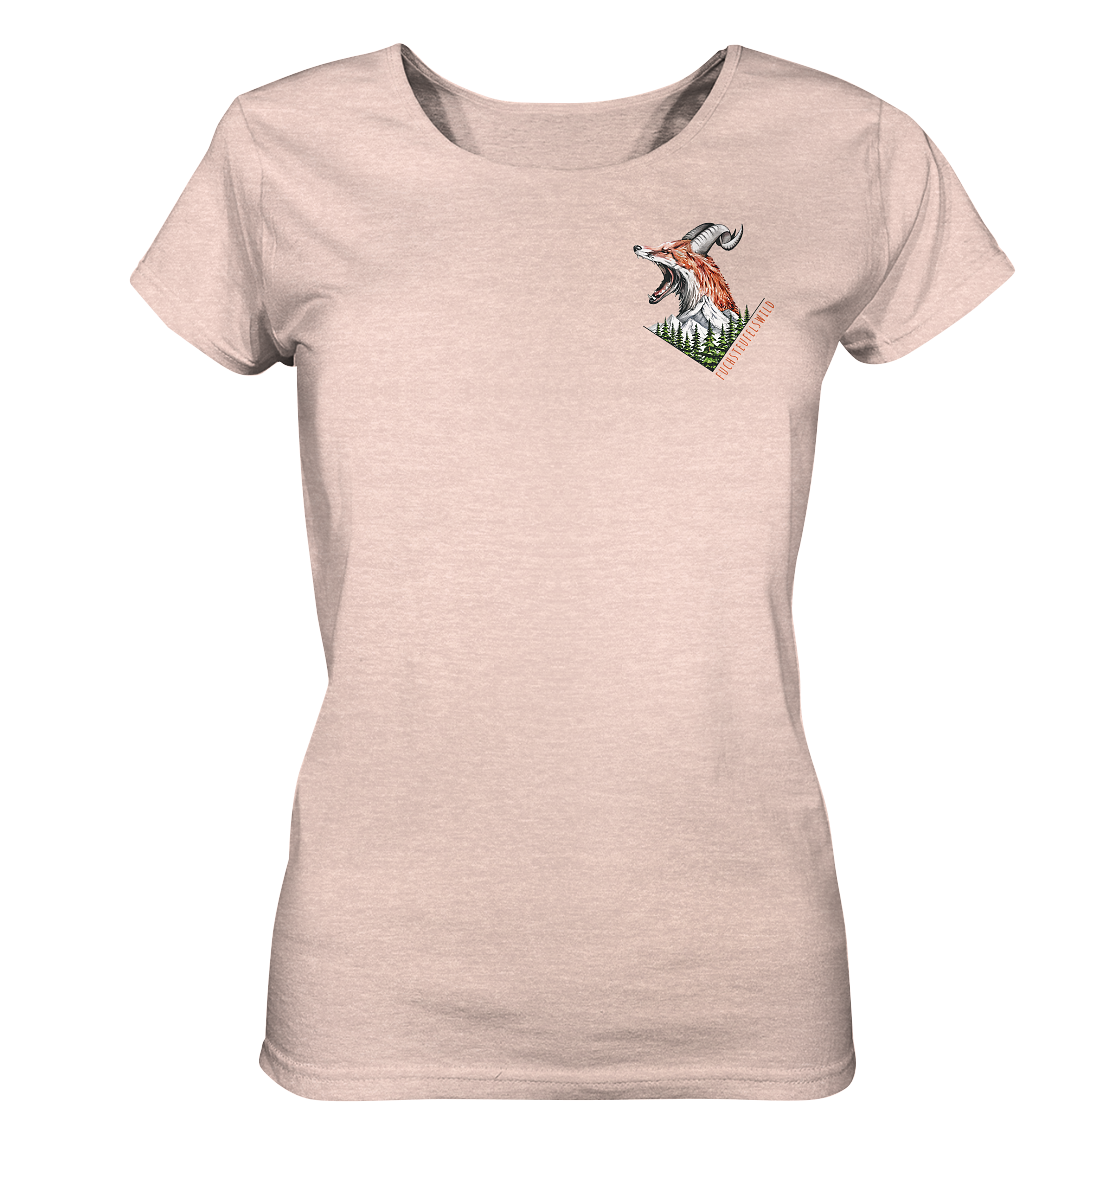 front-ladies-organic-shirt-meliert-ffded6-1116x-2.png